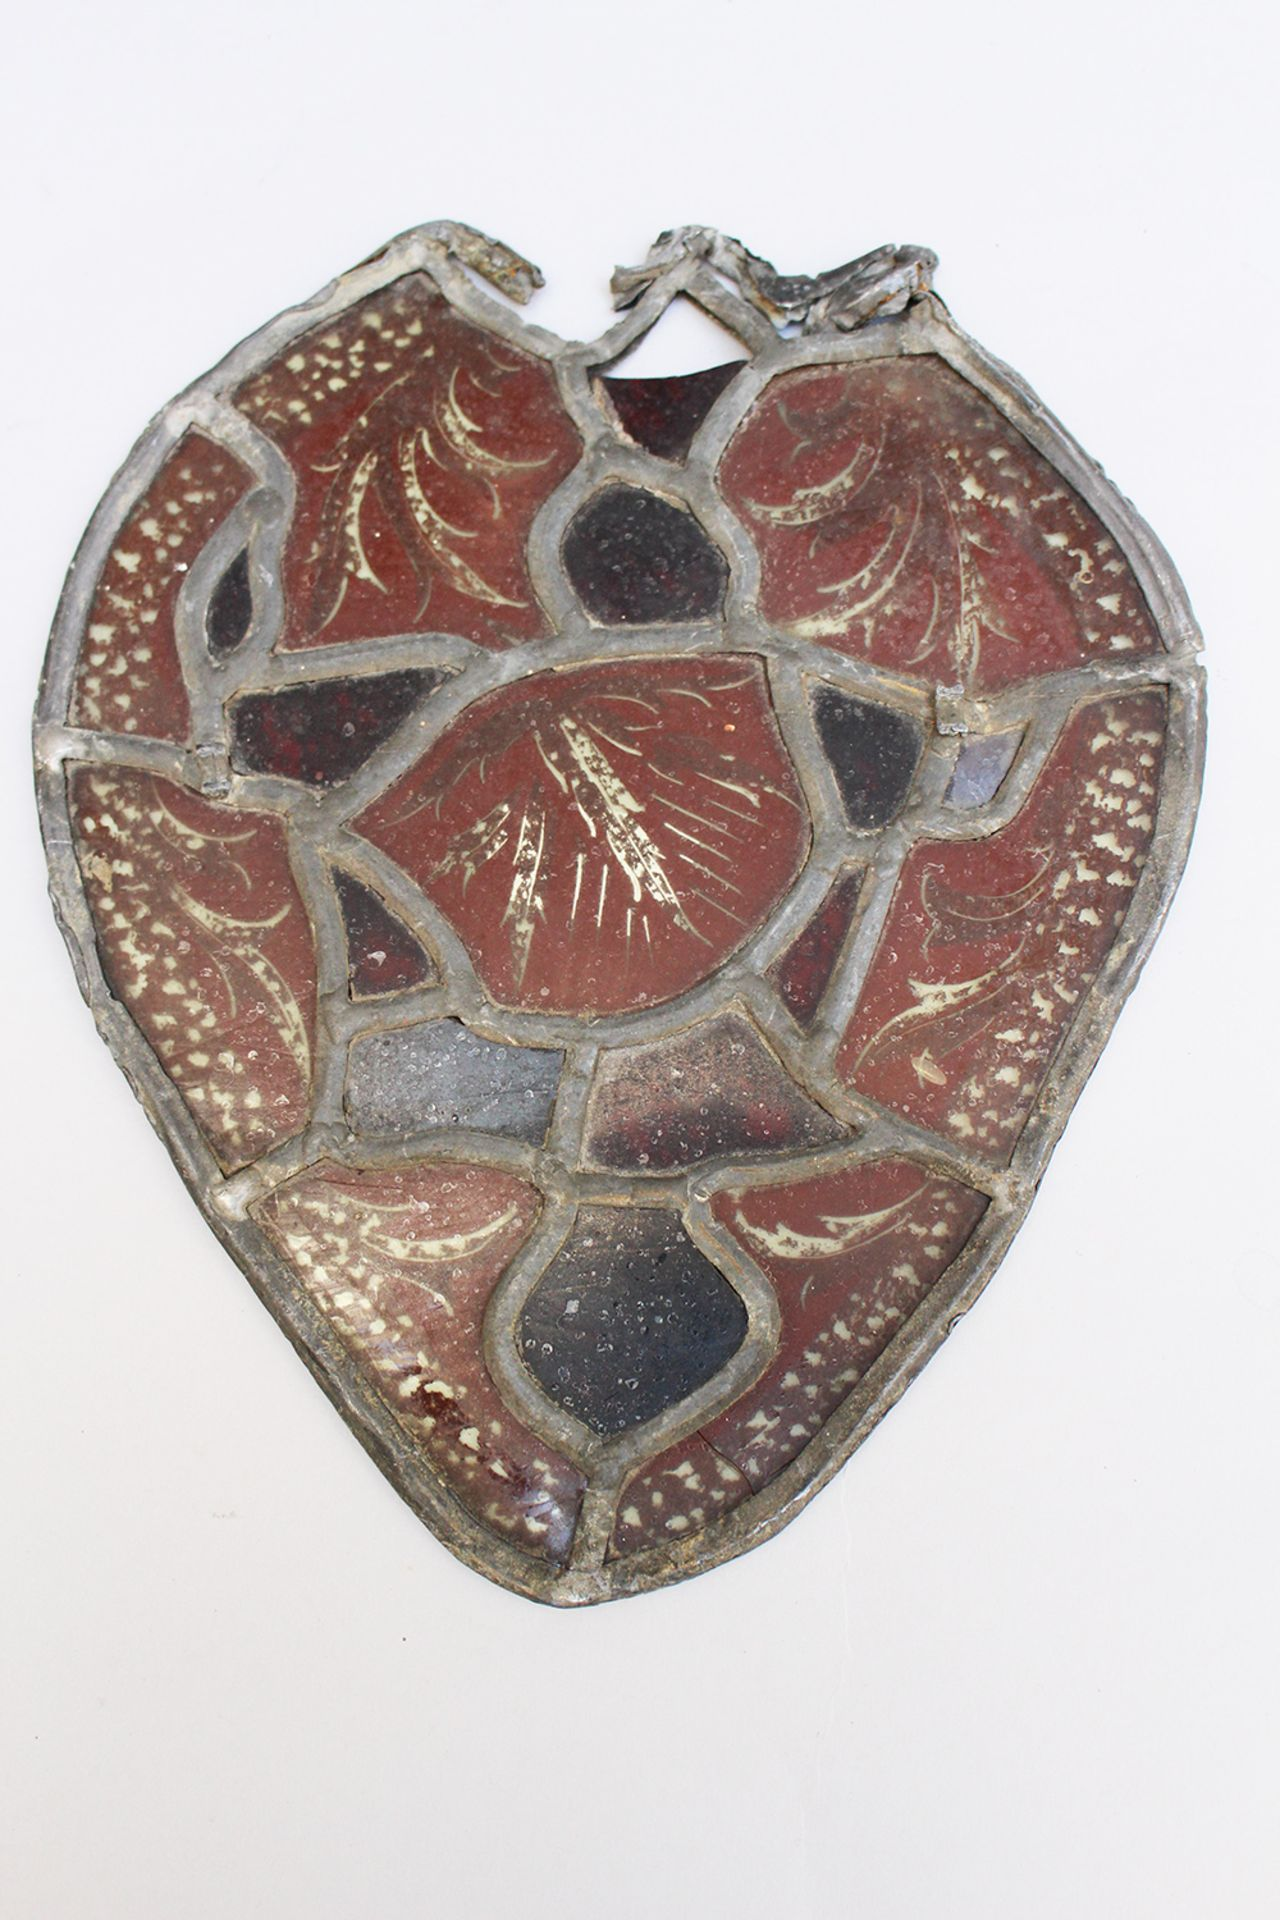 Glass window in medieval manner, red and black coloured leaves, in pewter frame,parts missing.